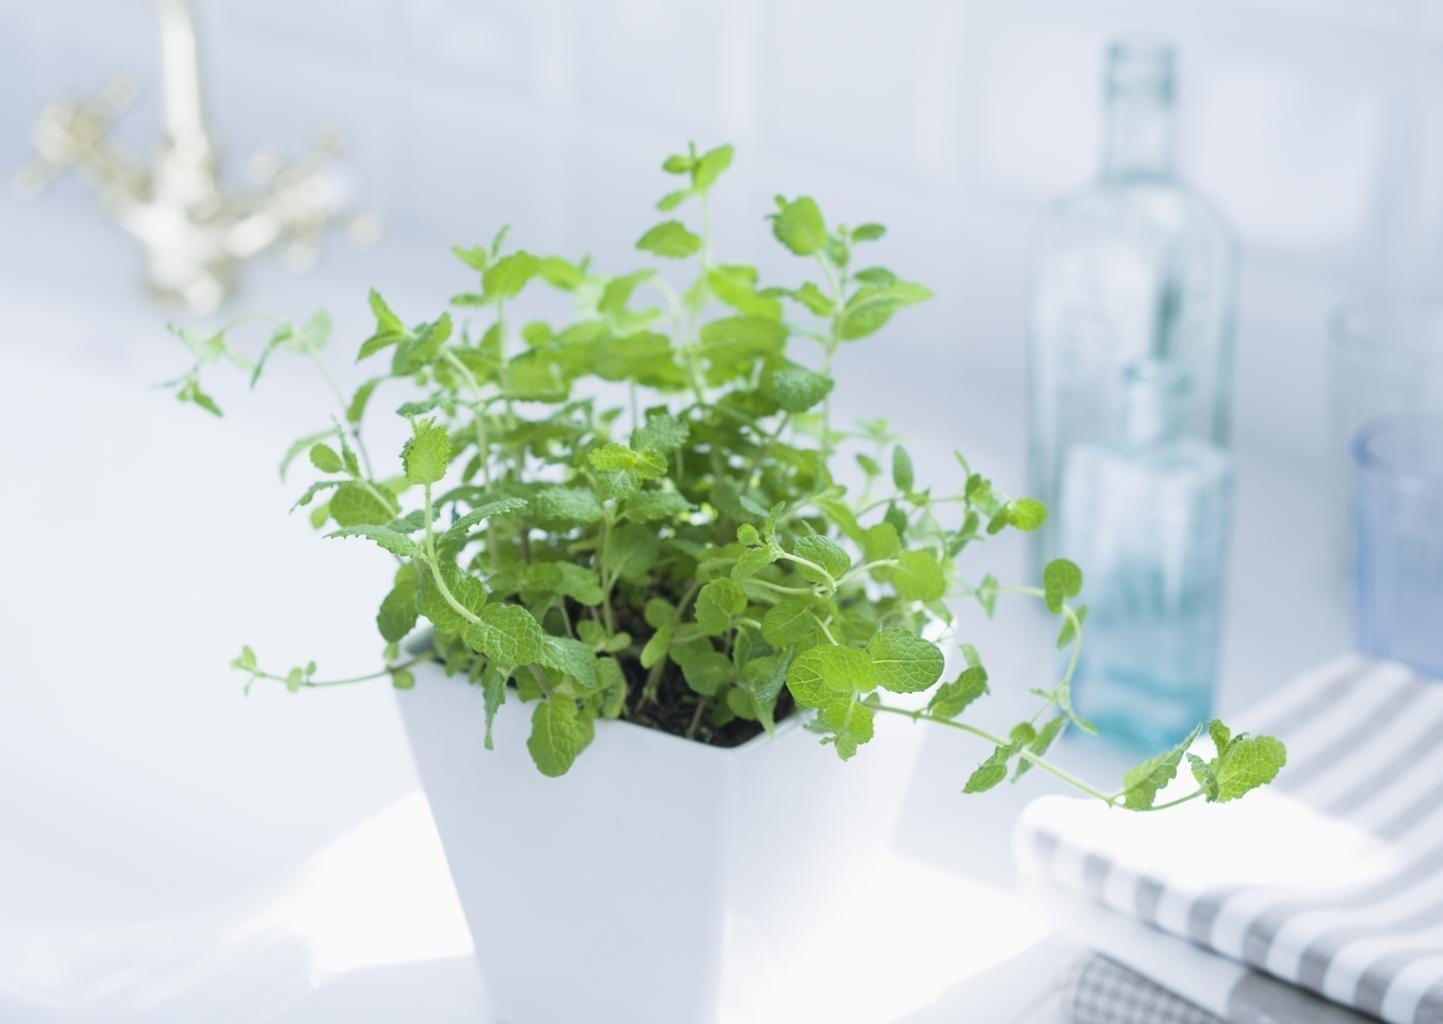 Herbs planted in white pot on a well lit counter